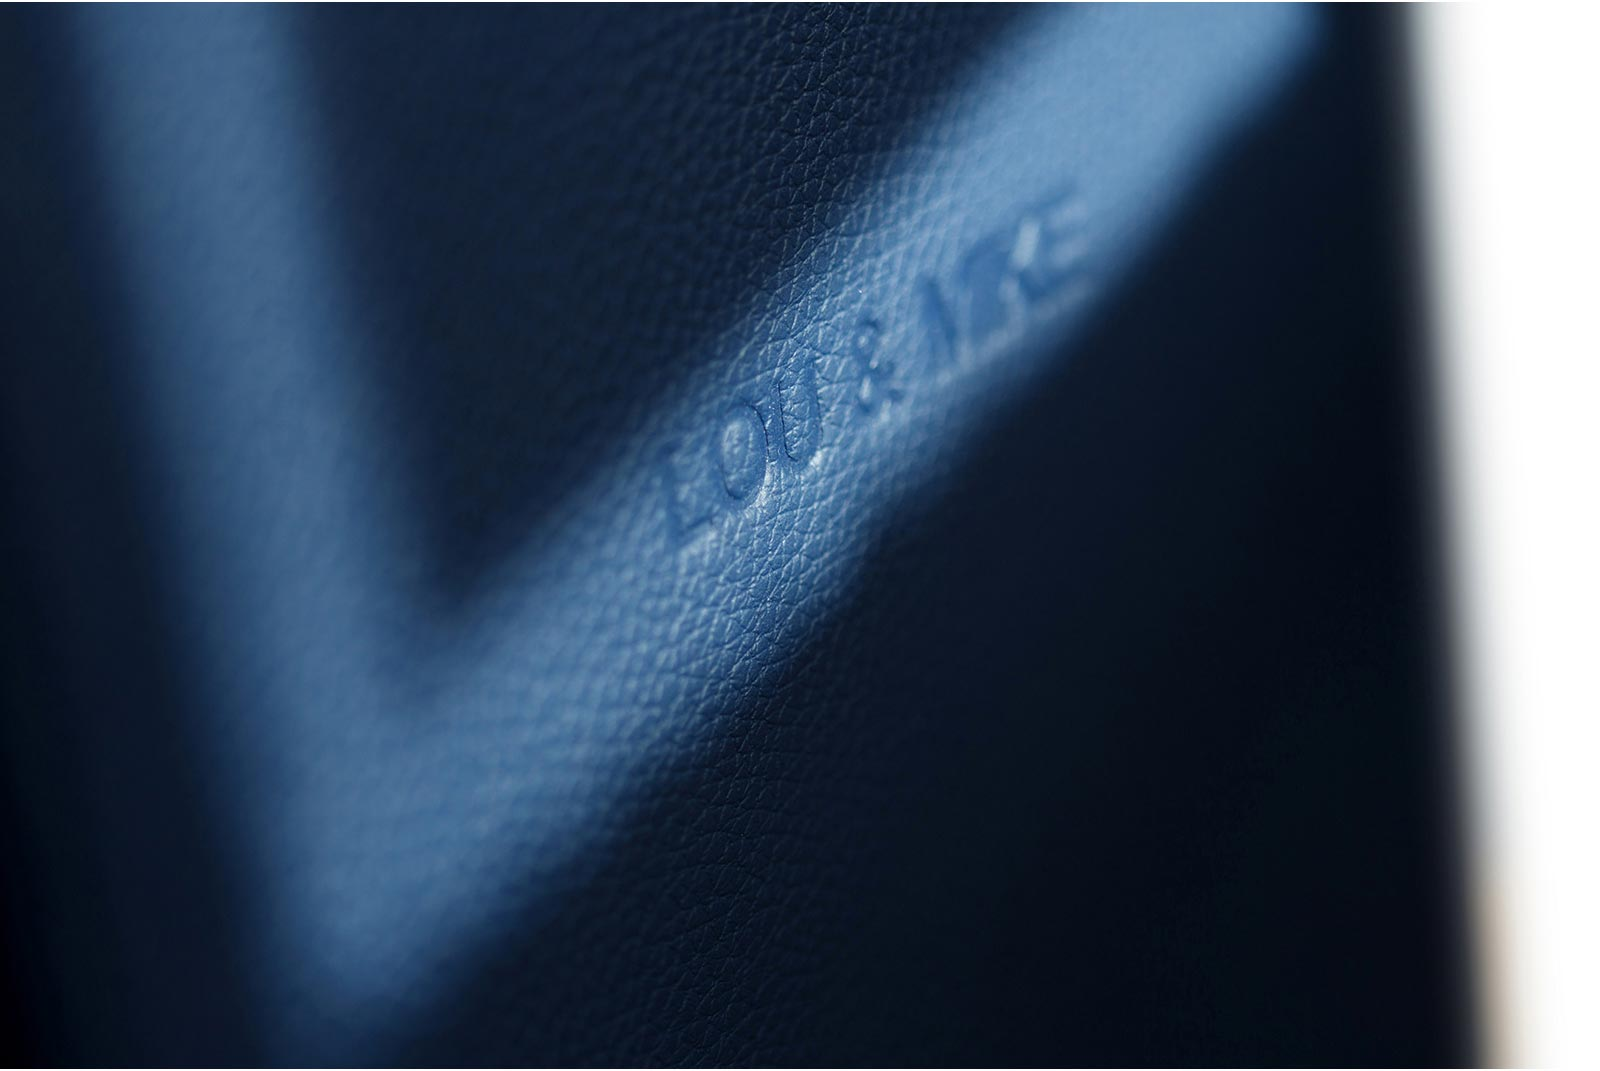 Embossed names on Royal blue wedding album